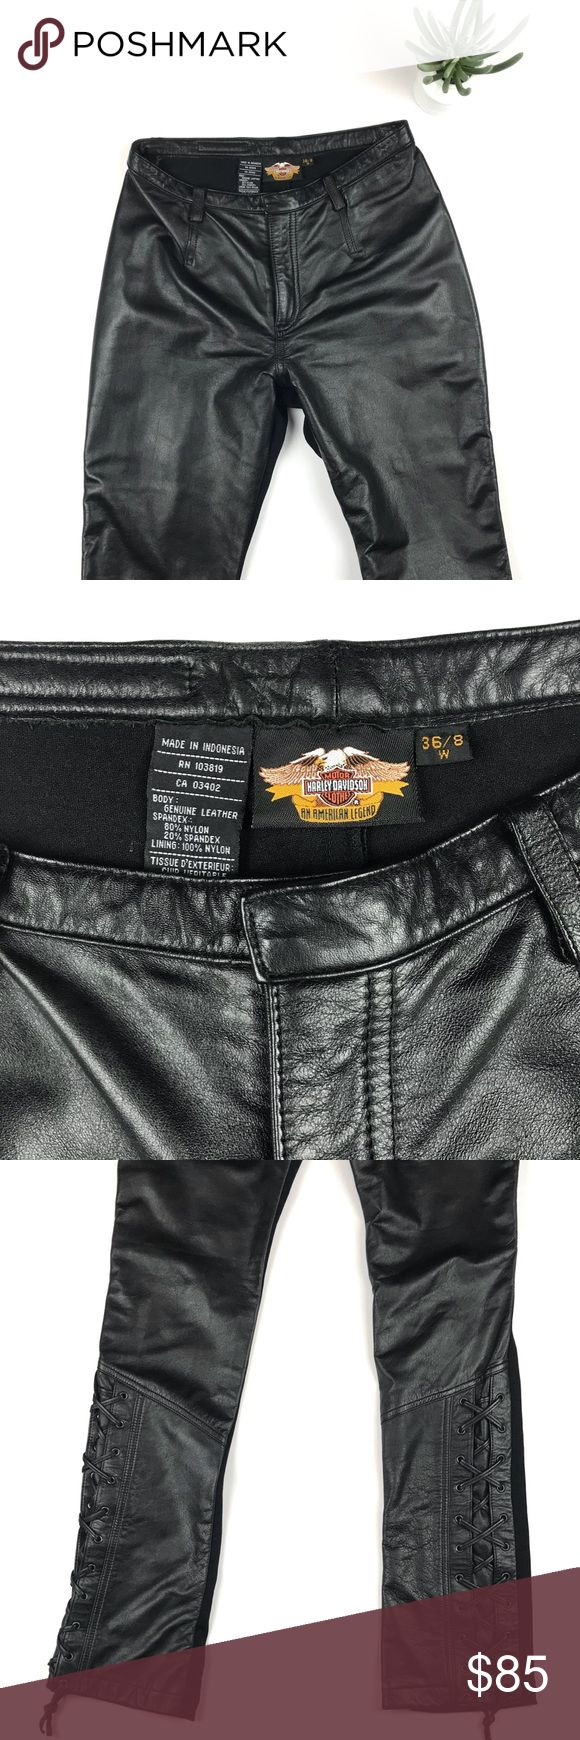 Harley Davidson Genuine Leather Pants 36/8 Harley Davidson Genuine Leather Pants 36/8!!! The details on this bad boy is INSANE!!! The. Pics speak for themselves 😍😍! I️ wish they were my size! Women's pants! The back is 80% nylon and 20% spandex so they will look great on the booty Harley-Davidson Pants